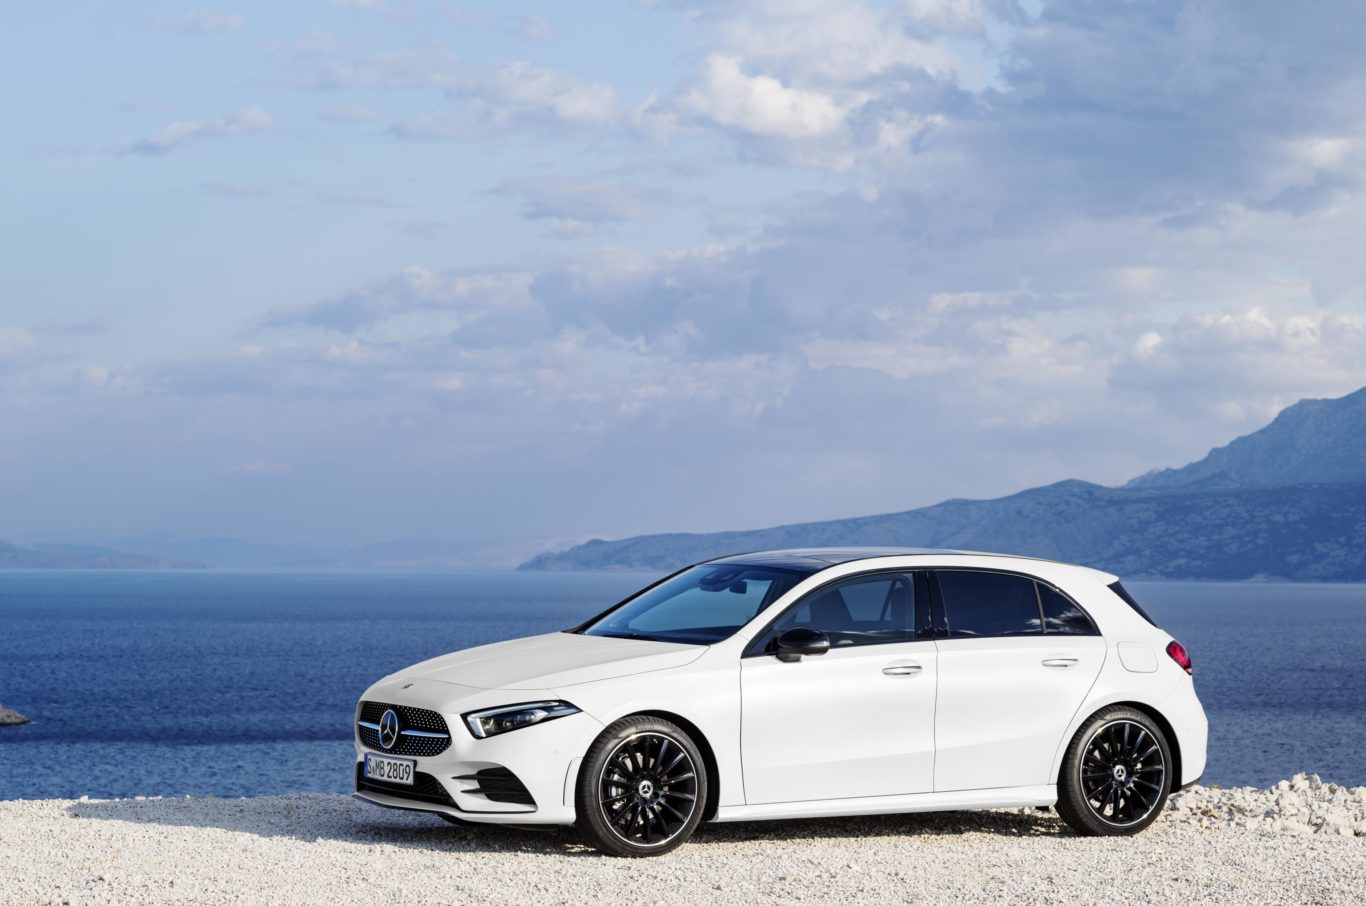 The new A-Class features a variety of cutting-edge safety tech